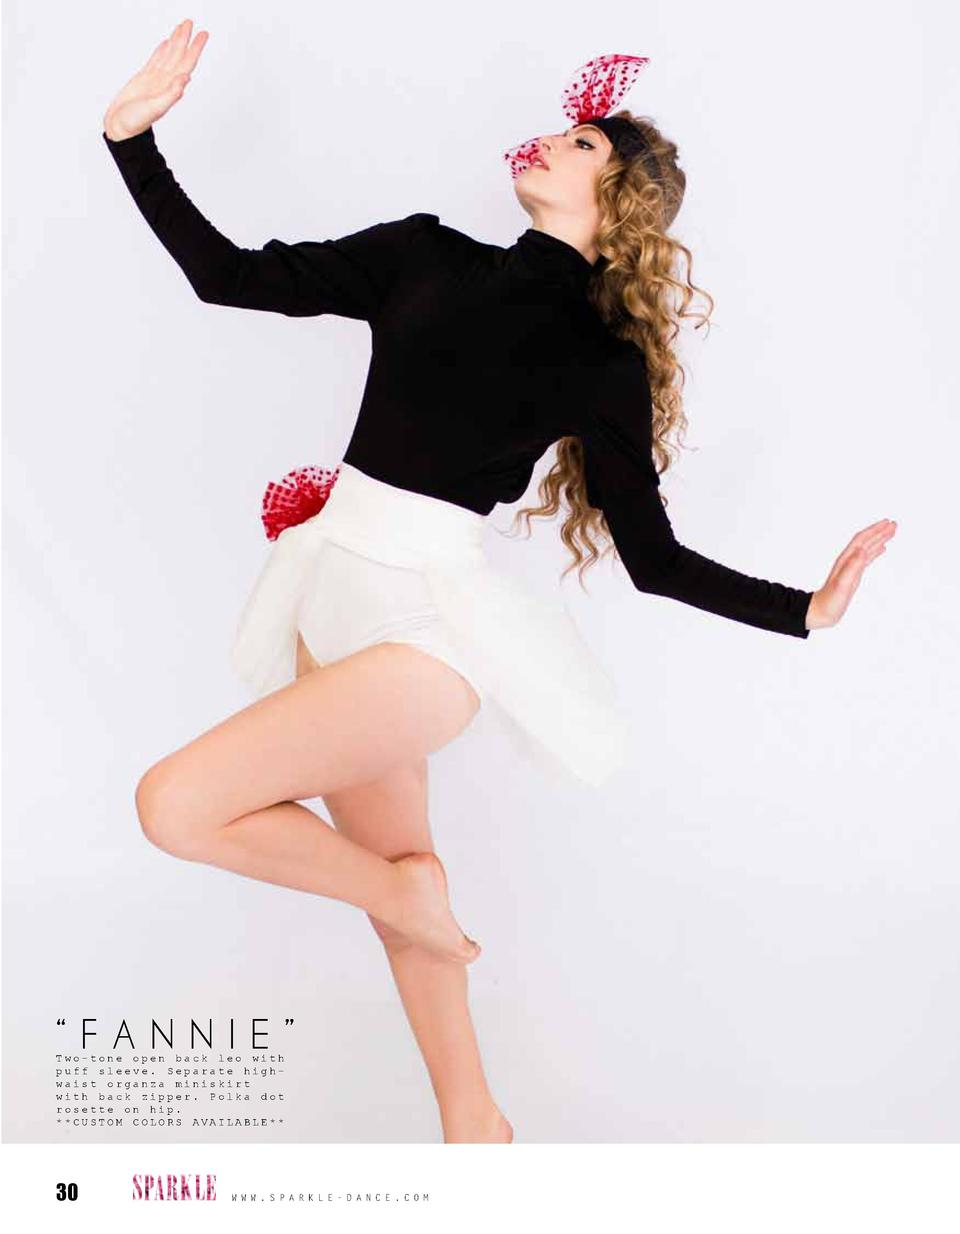 FANNIE    Two-tone open back leo with puff sleeve. Separate highwaist organza miniskirt with back zipper. Polka dot ros...